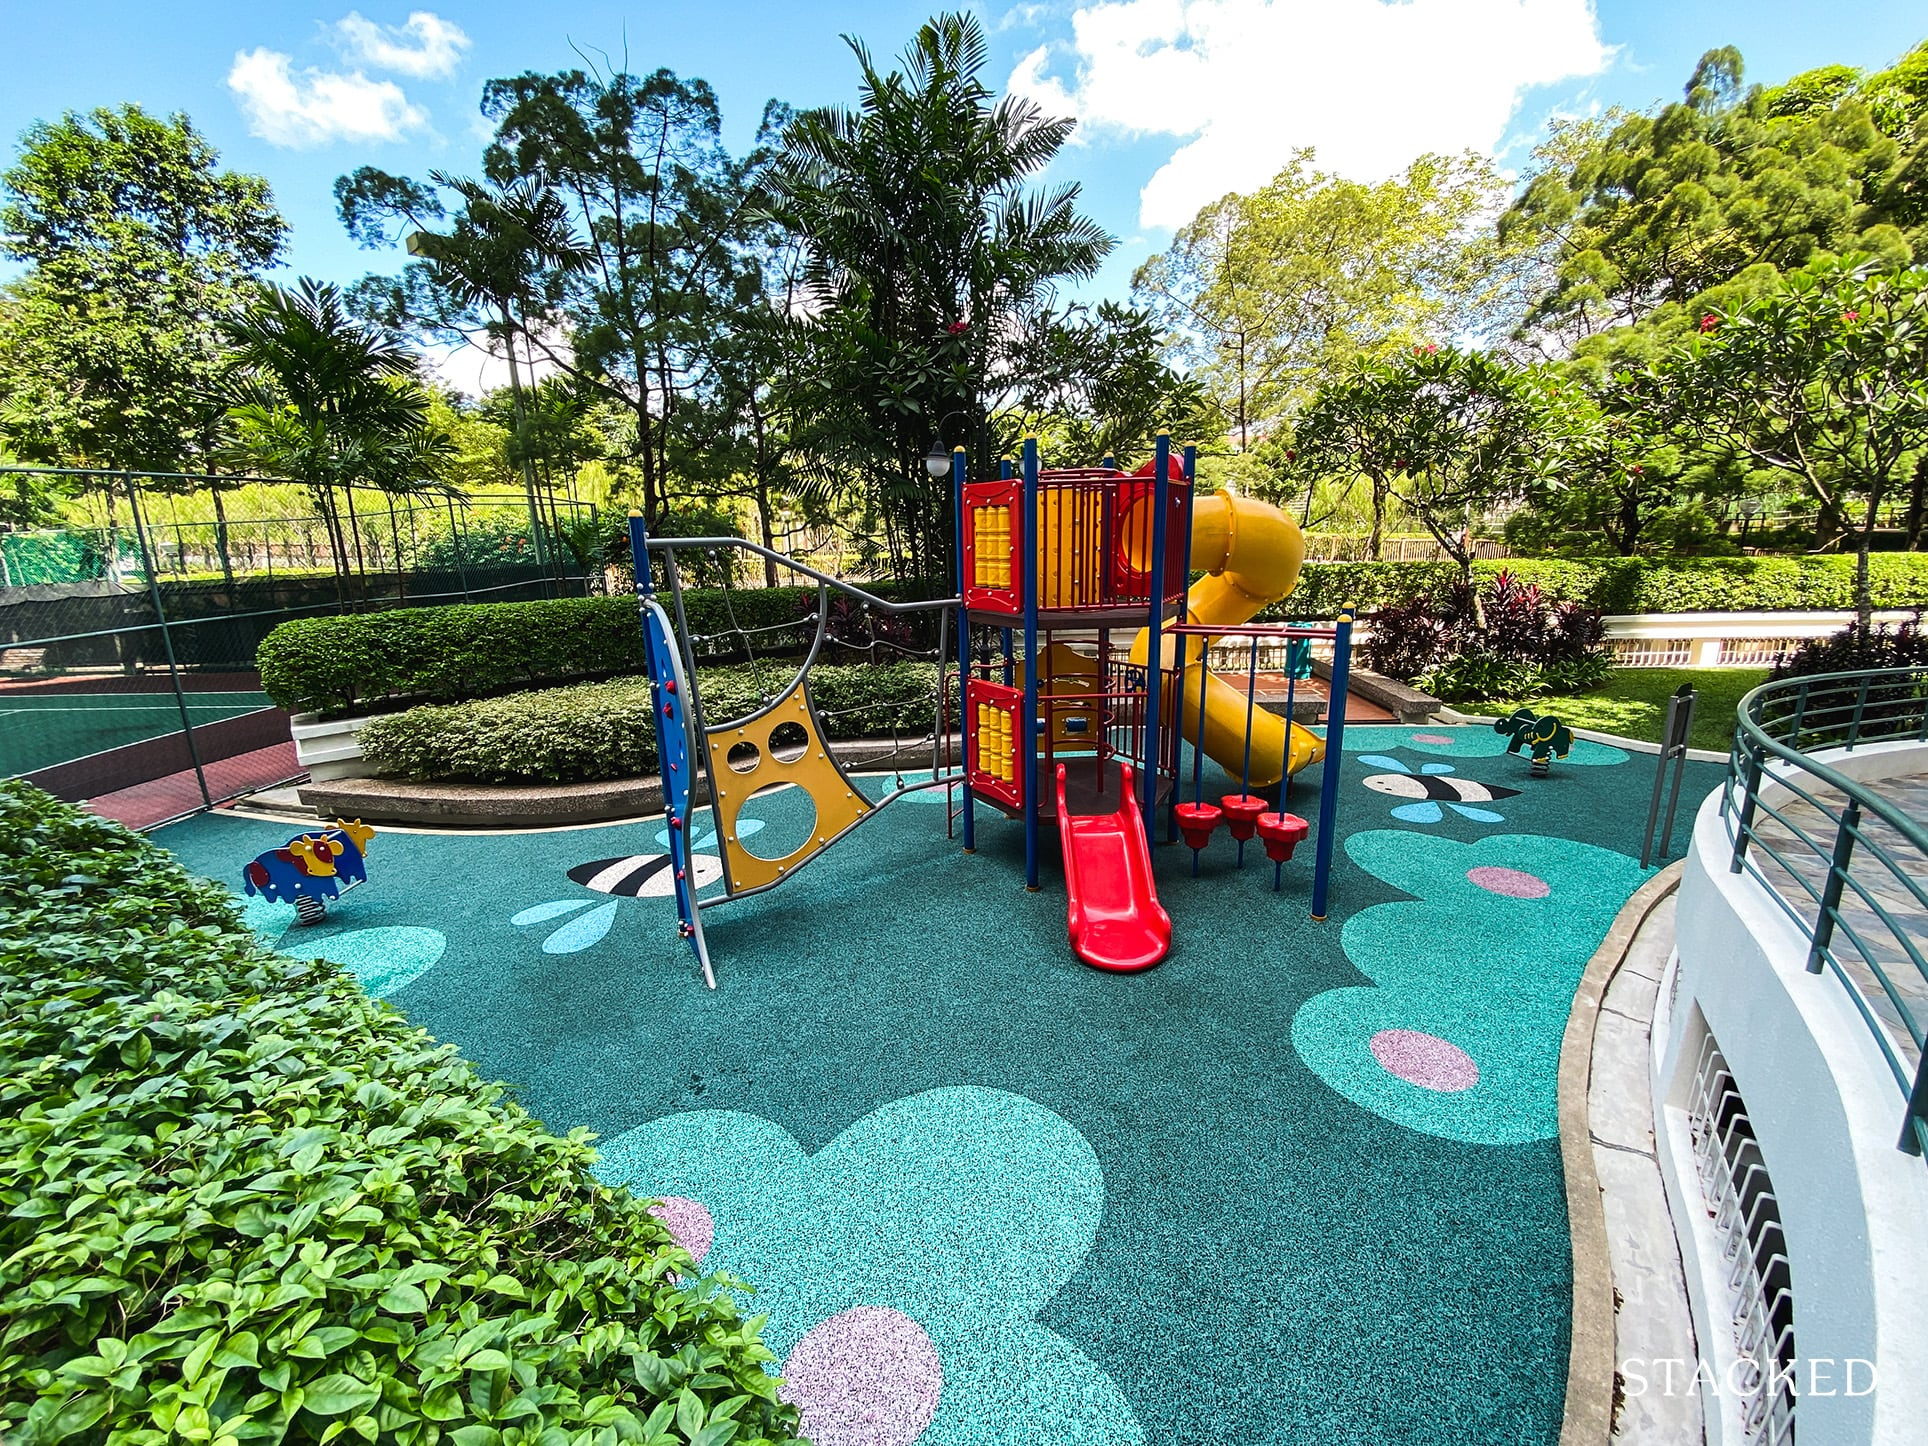 Tanglin regency playground